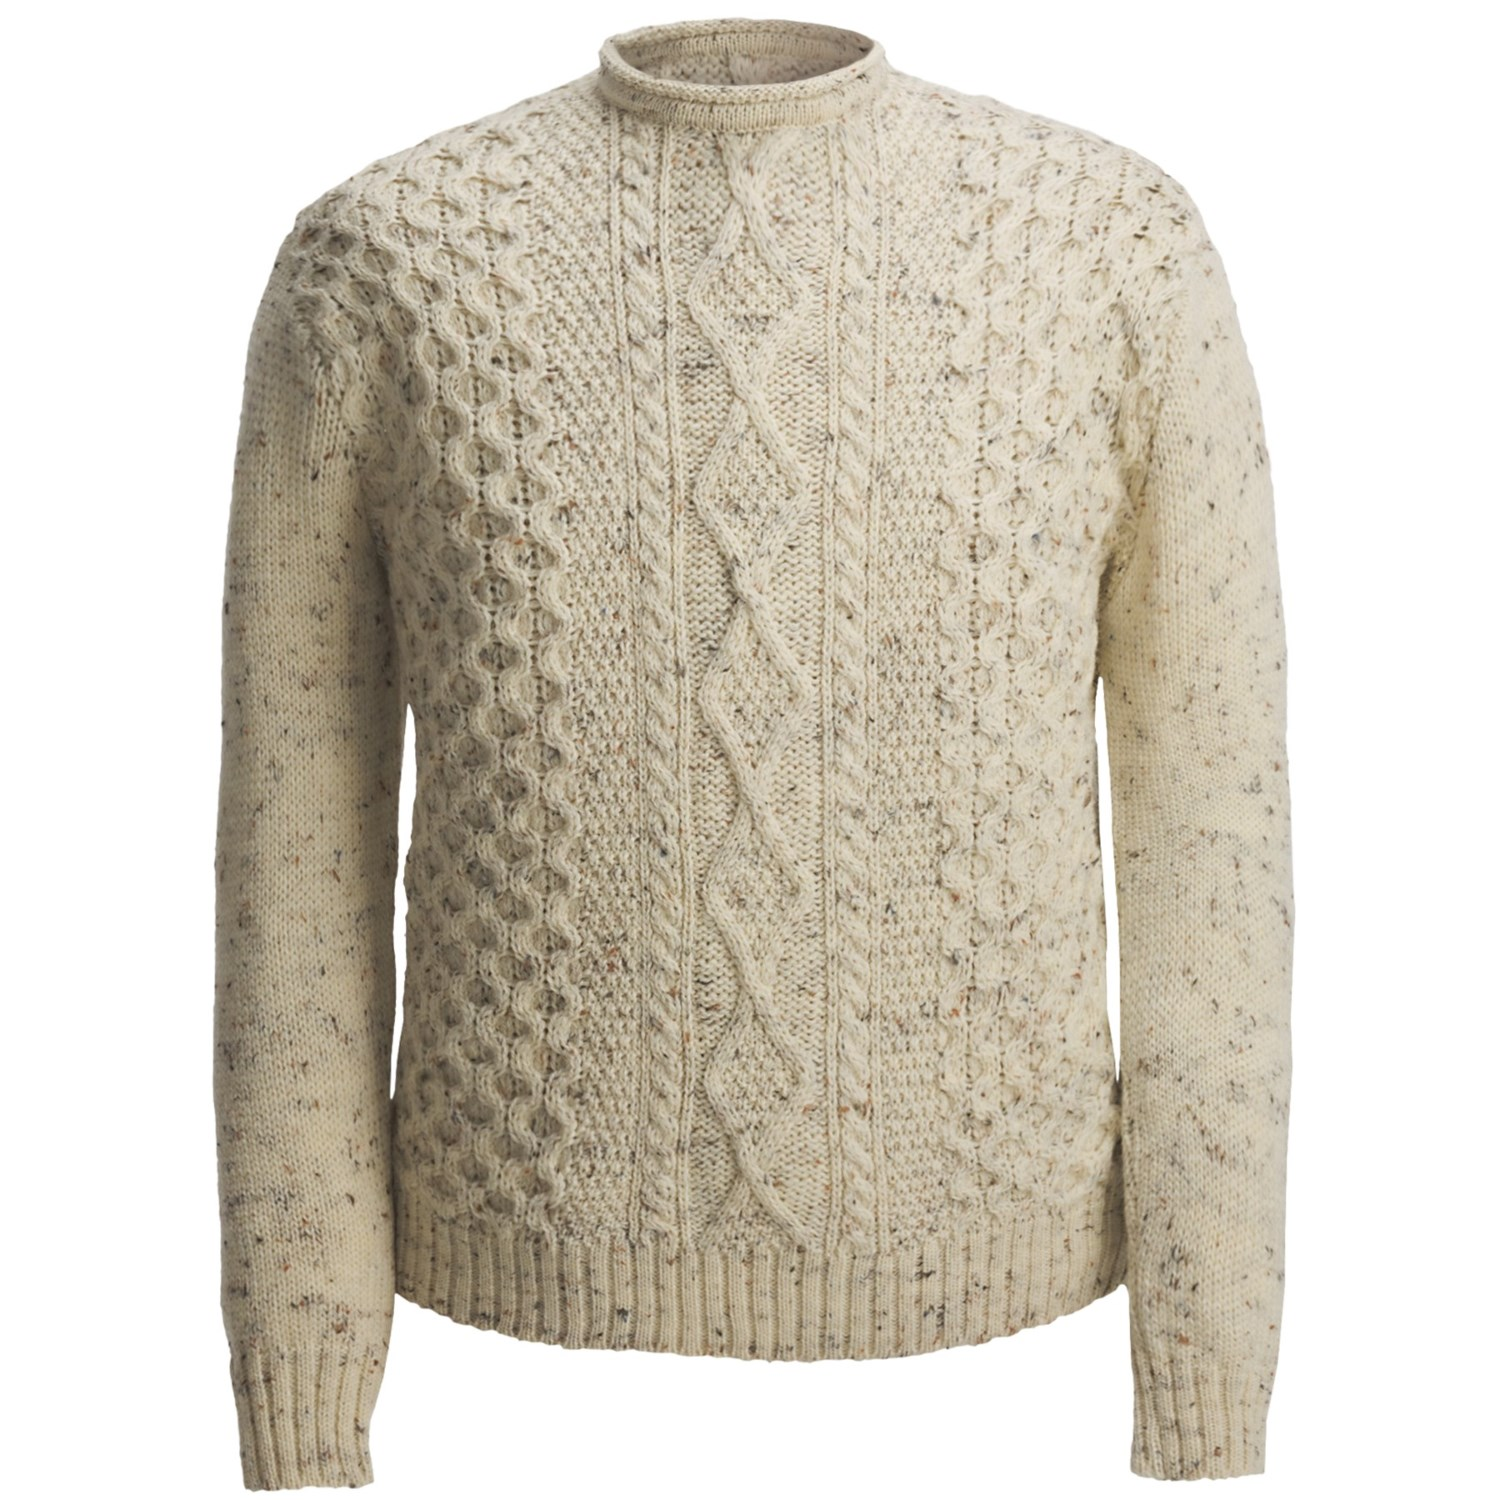 Knitting Sweaters For Men : Aran sweater on sale jeans and boots